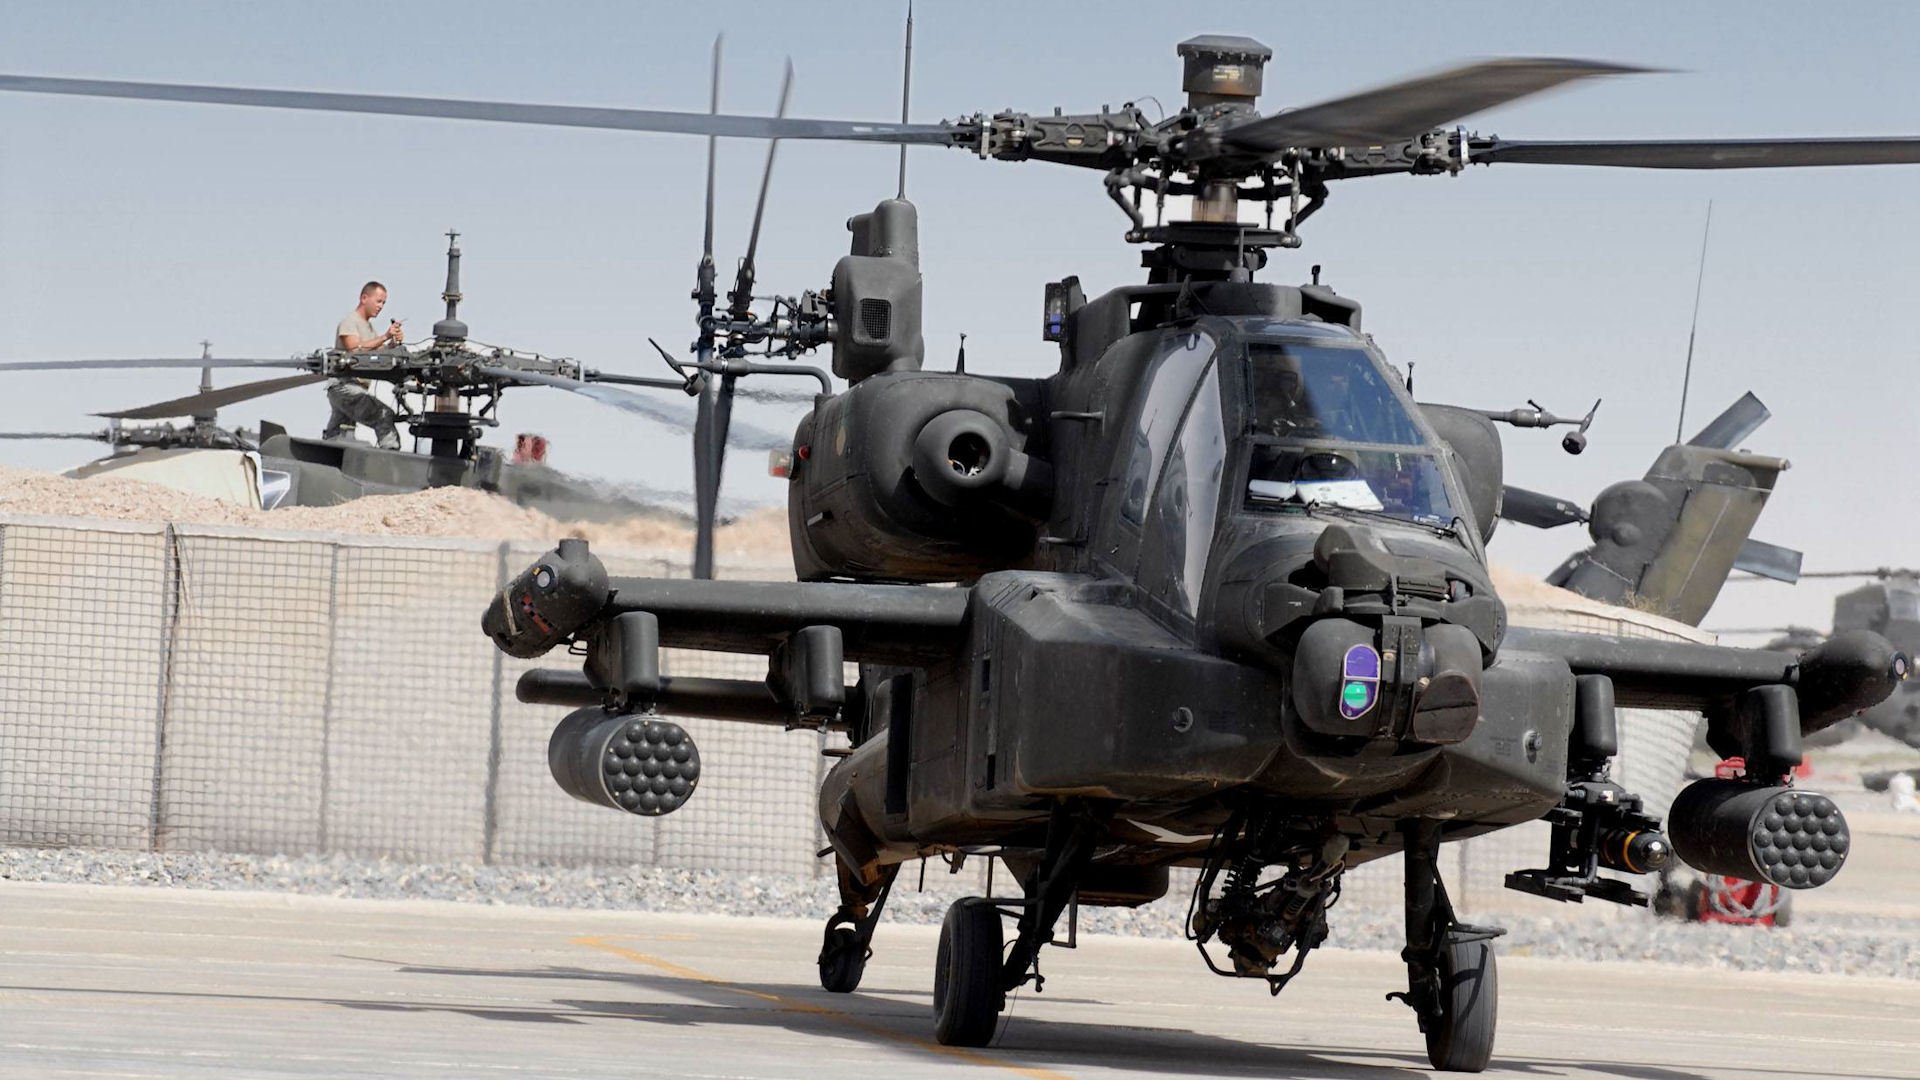 Apache-Helicopter-Mobile-HD-1920×1080-wallpaper-wpc5802197